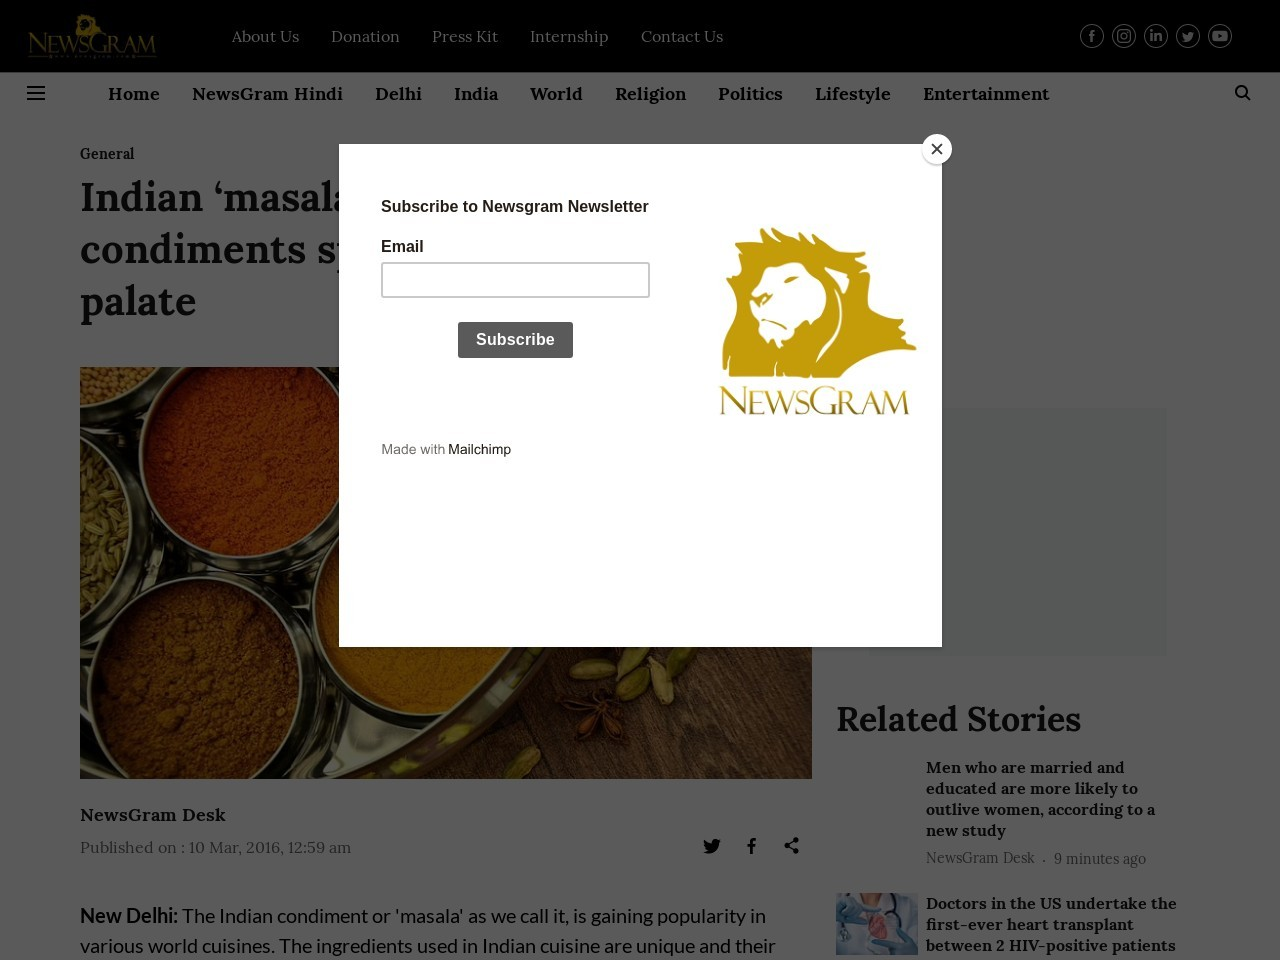 Indian 'masala', among other condiments spicing up global food palate